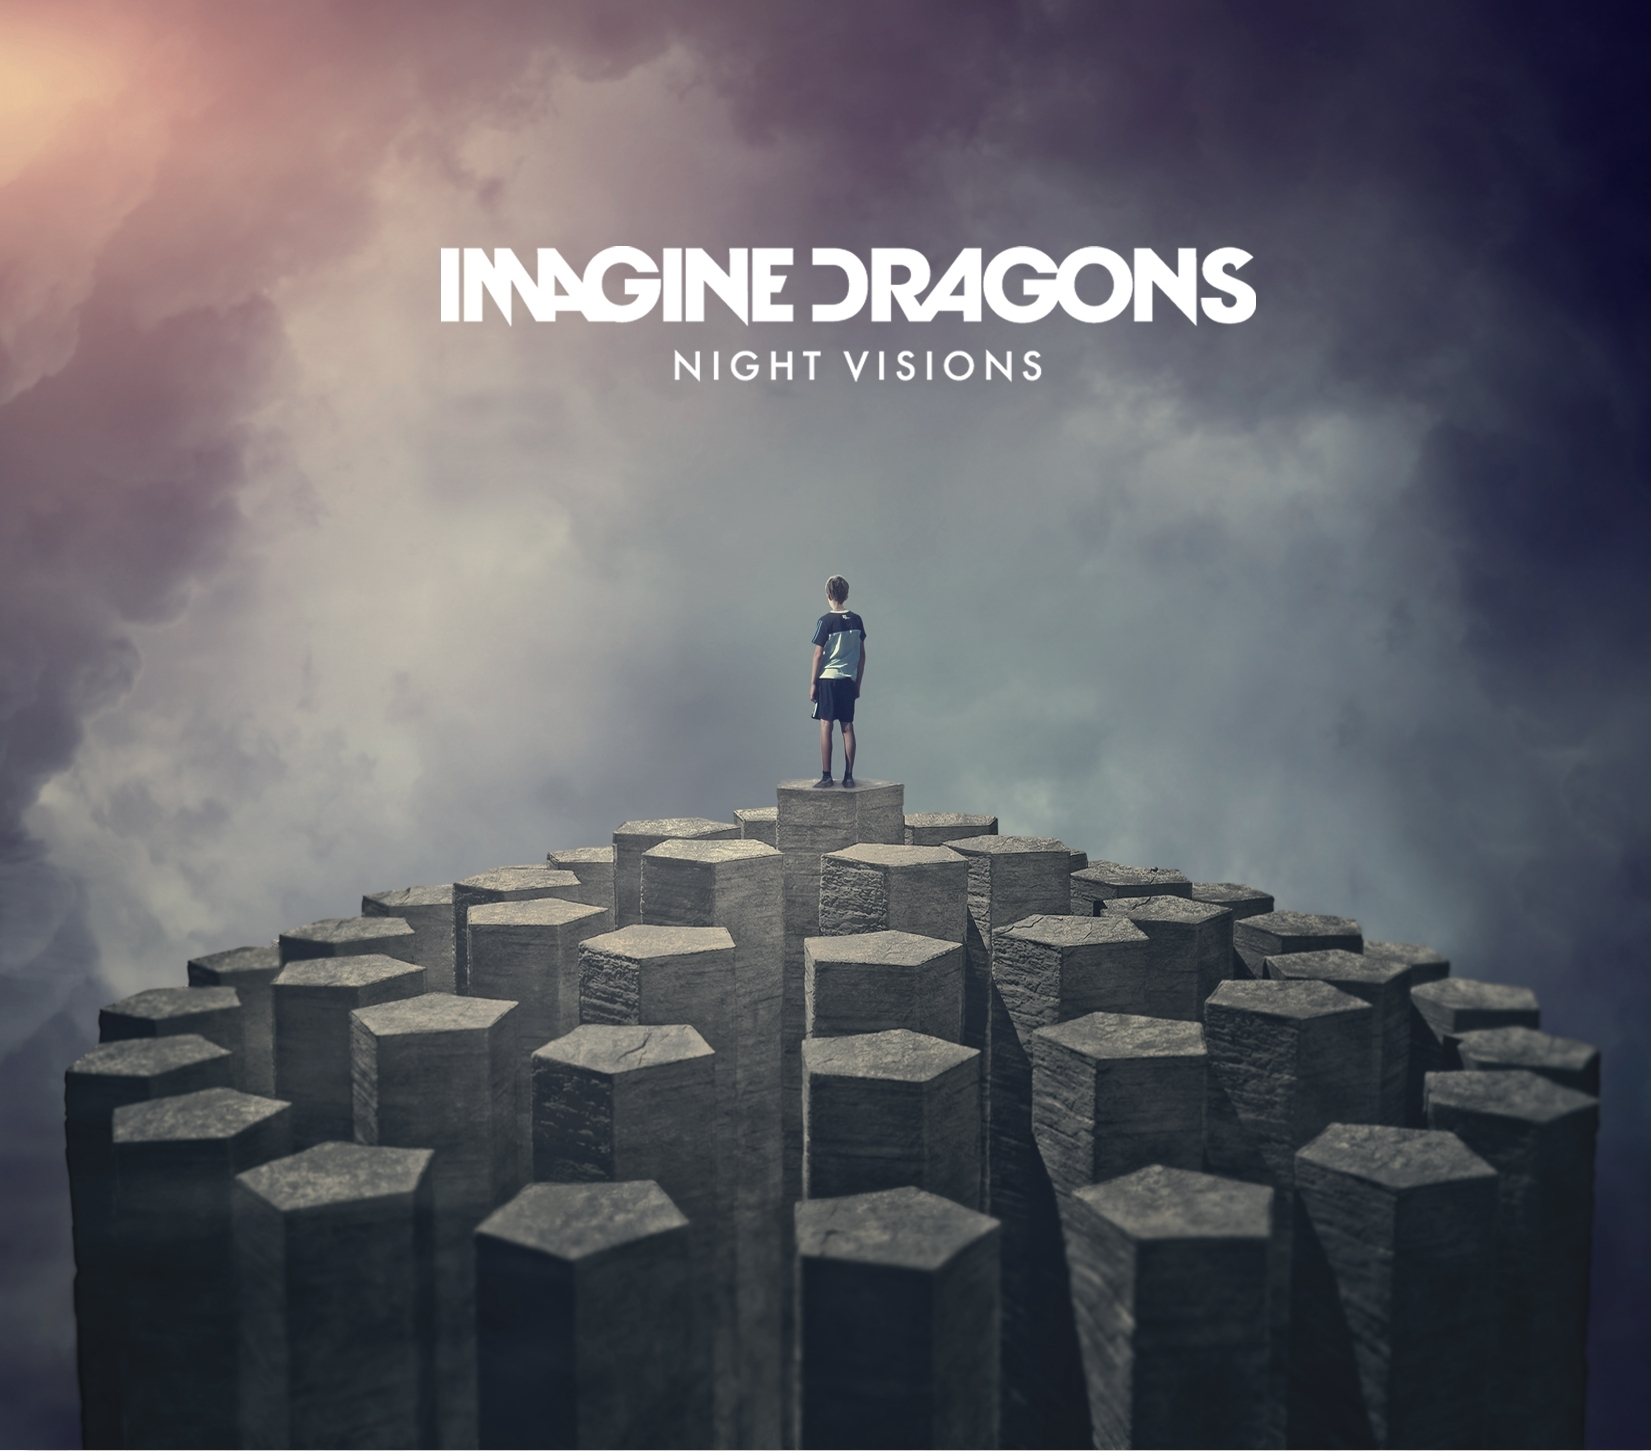 Imagine Dragons, 'Night Visions' album cover